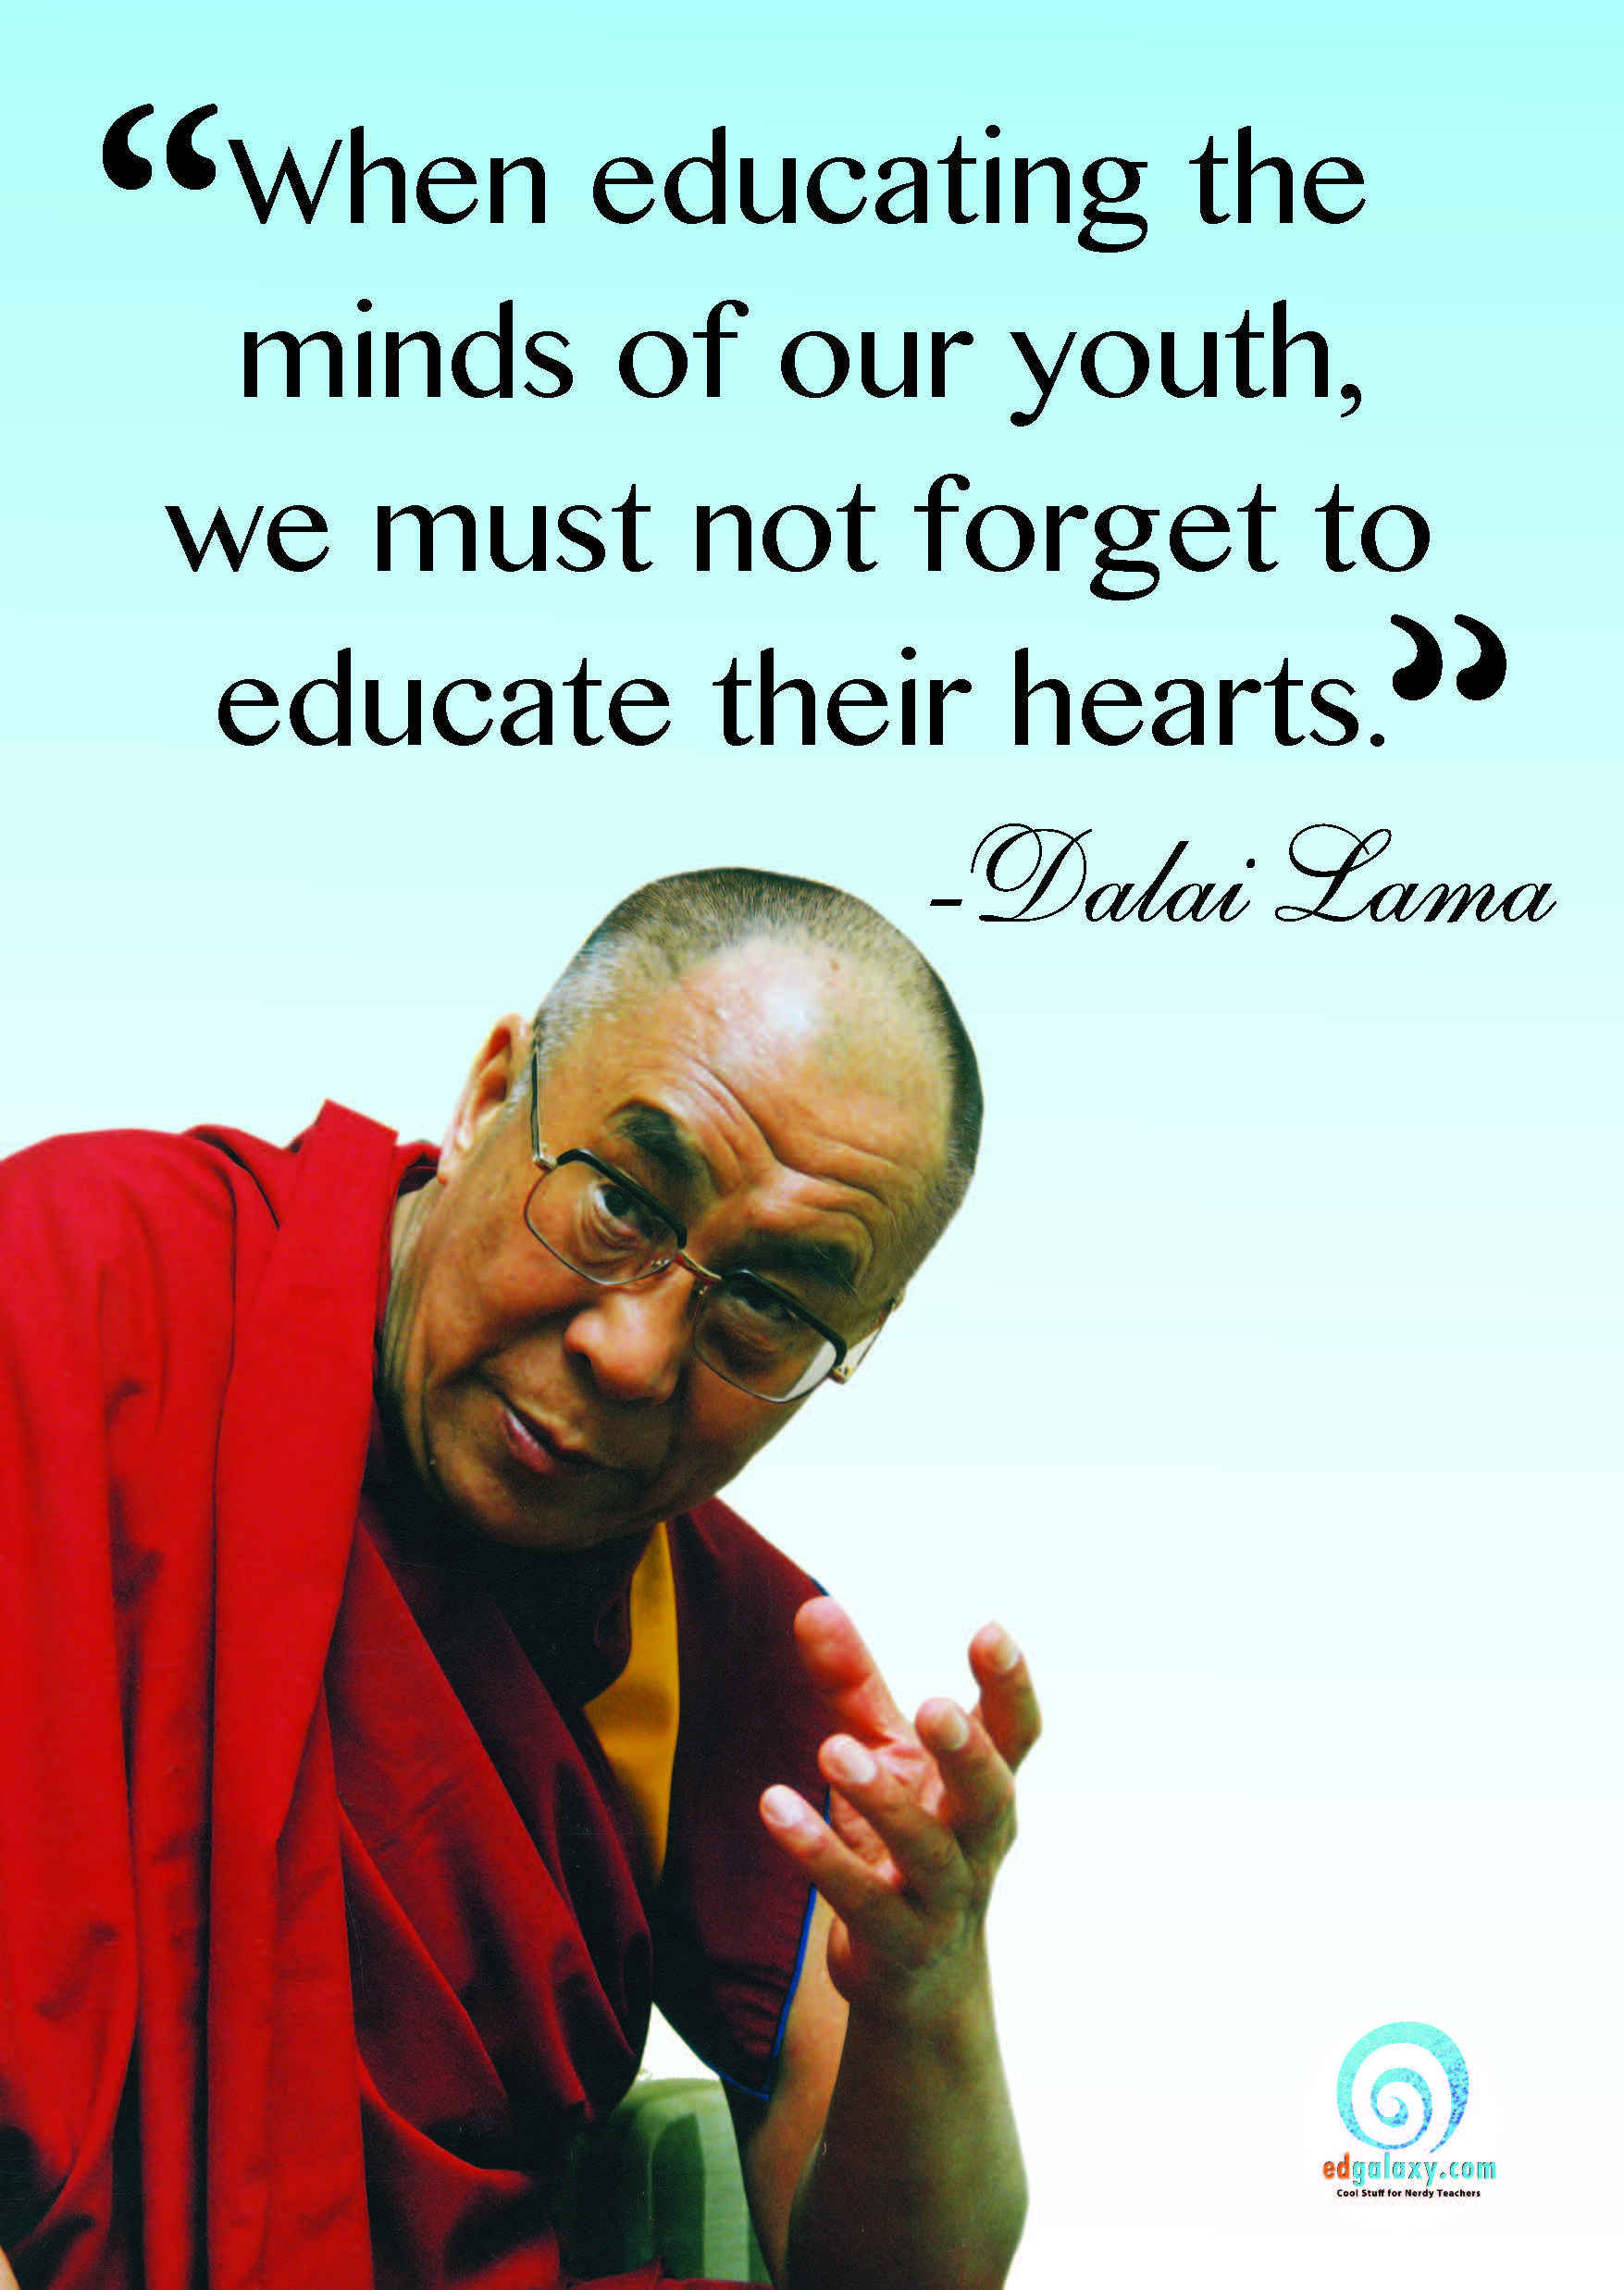 Image of: Famous People Education Quotes Posters Jpgpage01jpg Edgalaxy Cool Stuff For Nerdy Teachers Education Quotes Famous Quotes For Teachers And Students